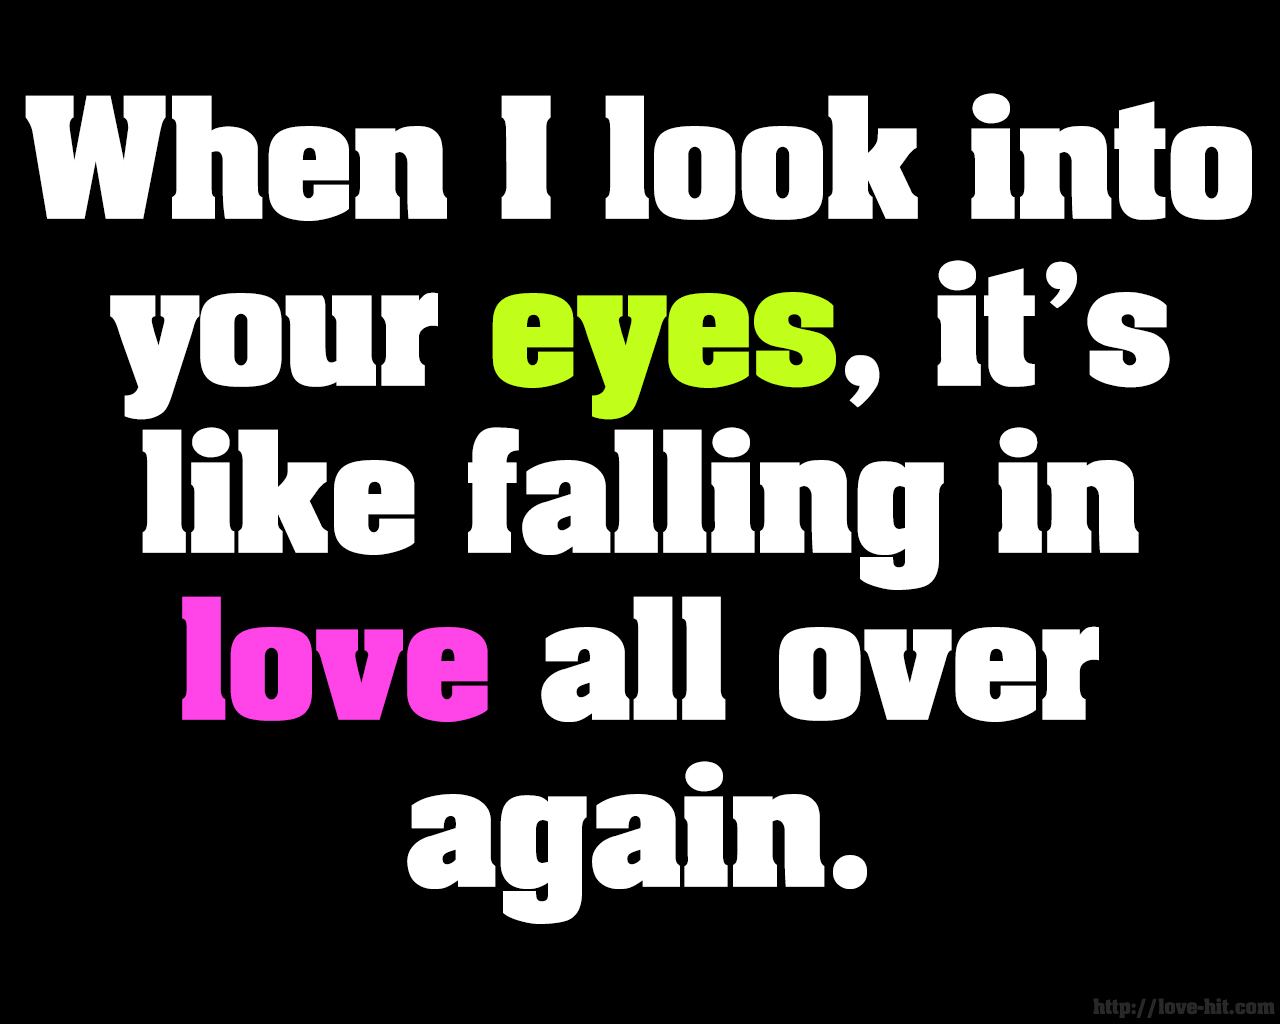 When I look into your eyes, it's like falling in love all over again